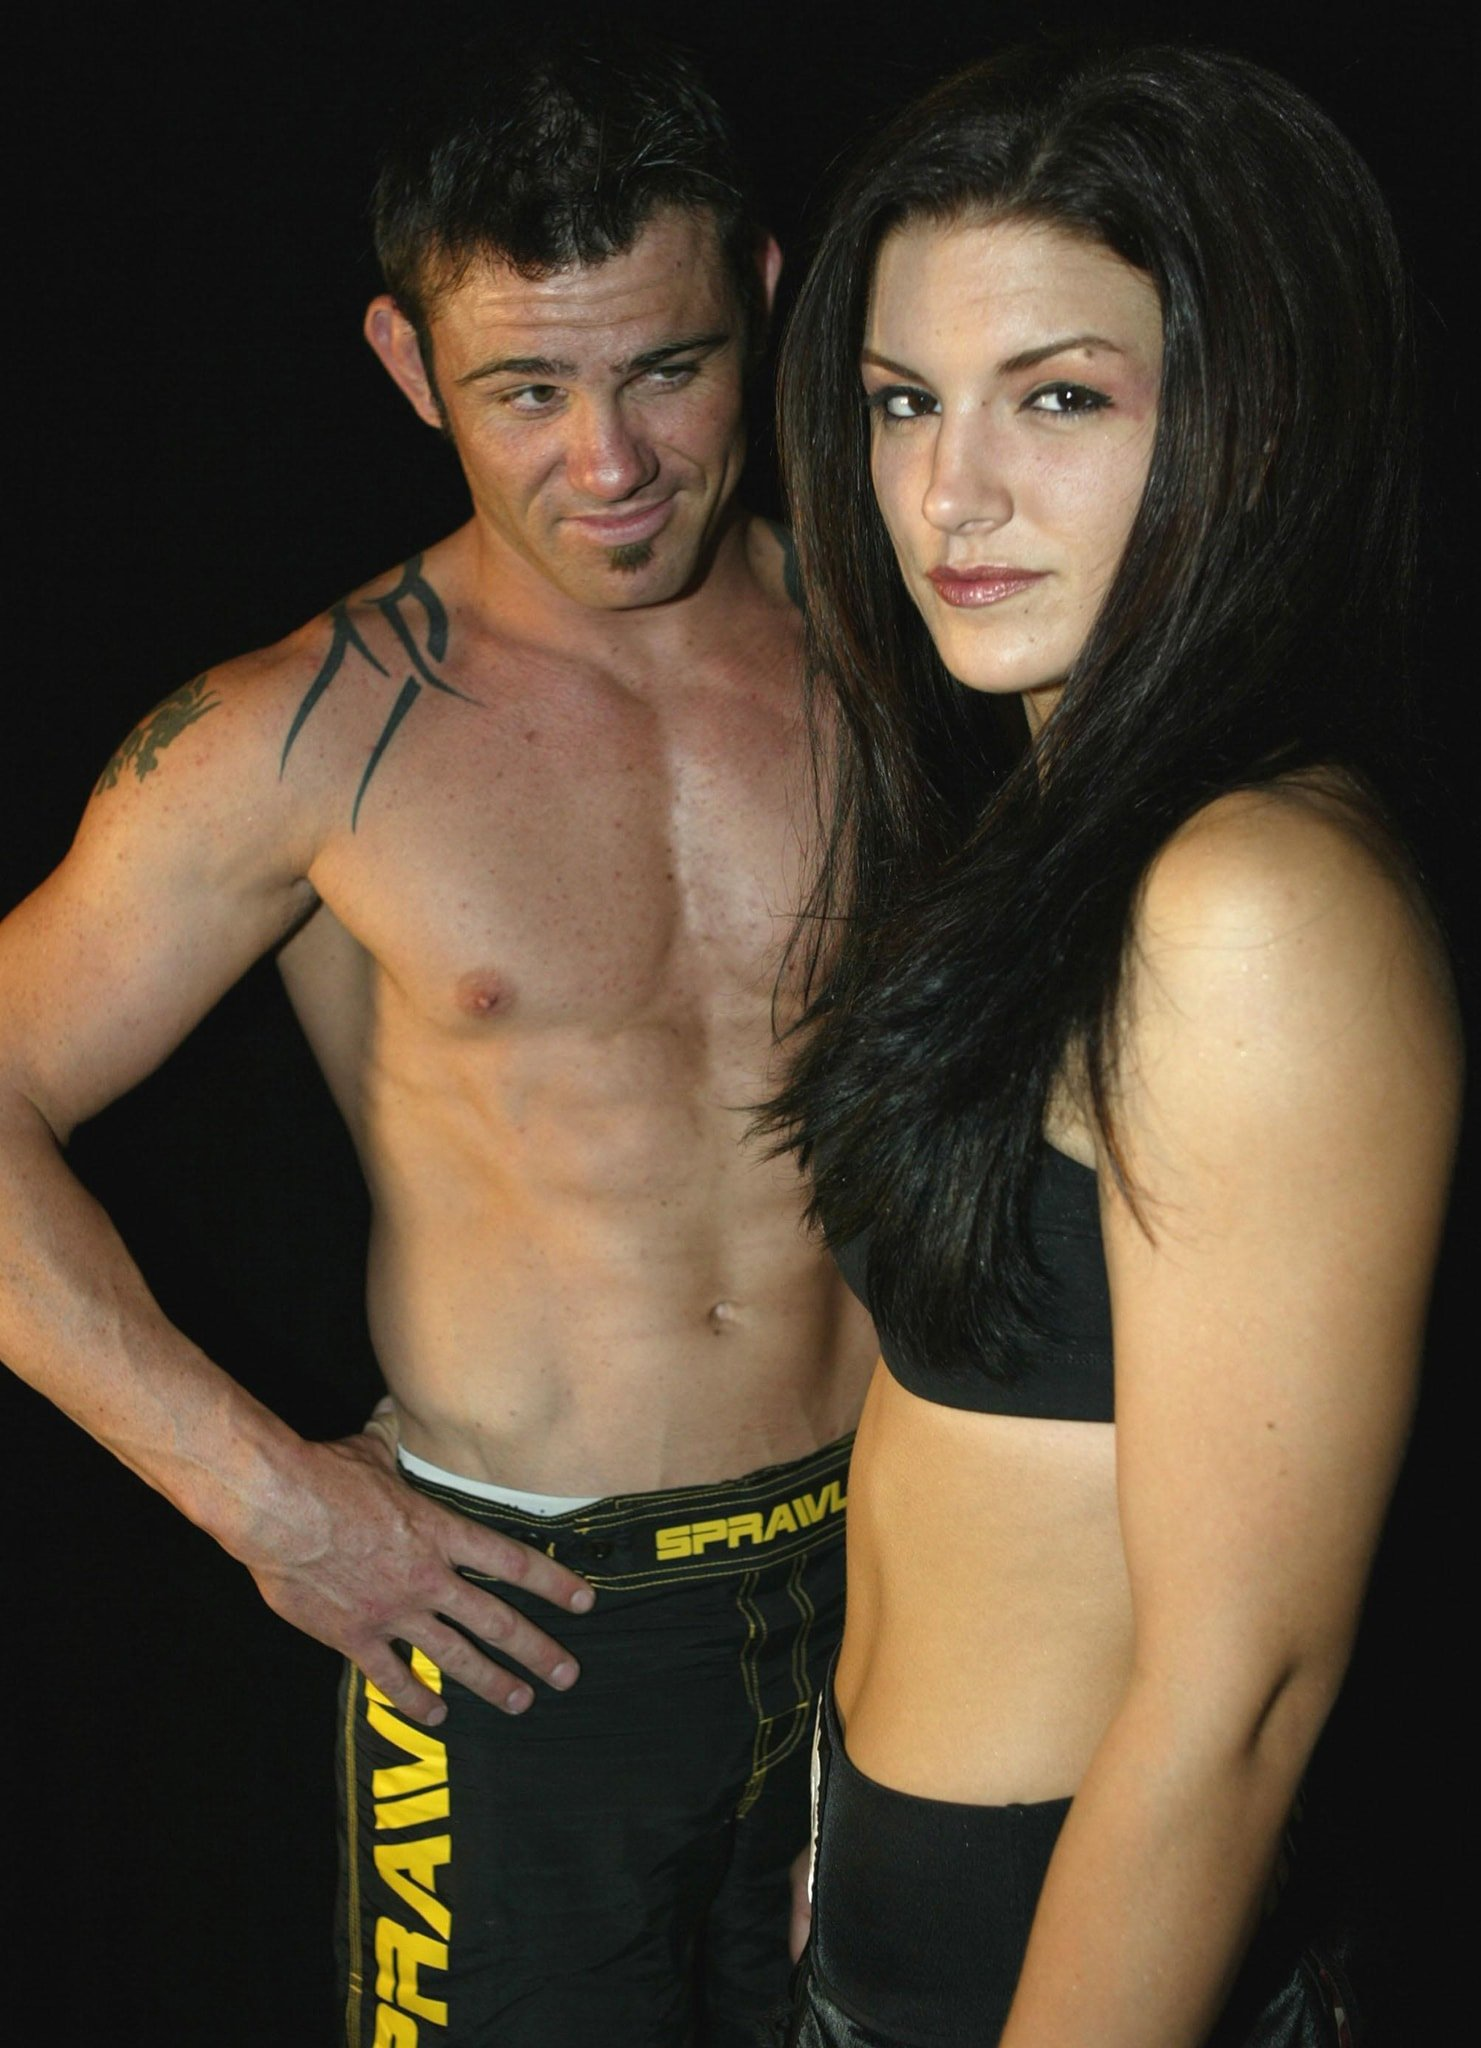 Gina Carano pictured in 2006 with then trainer and World Champion boxer Kit Cope